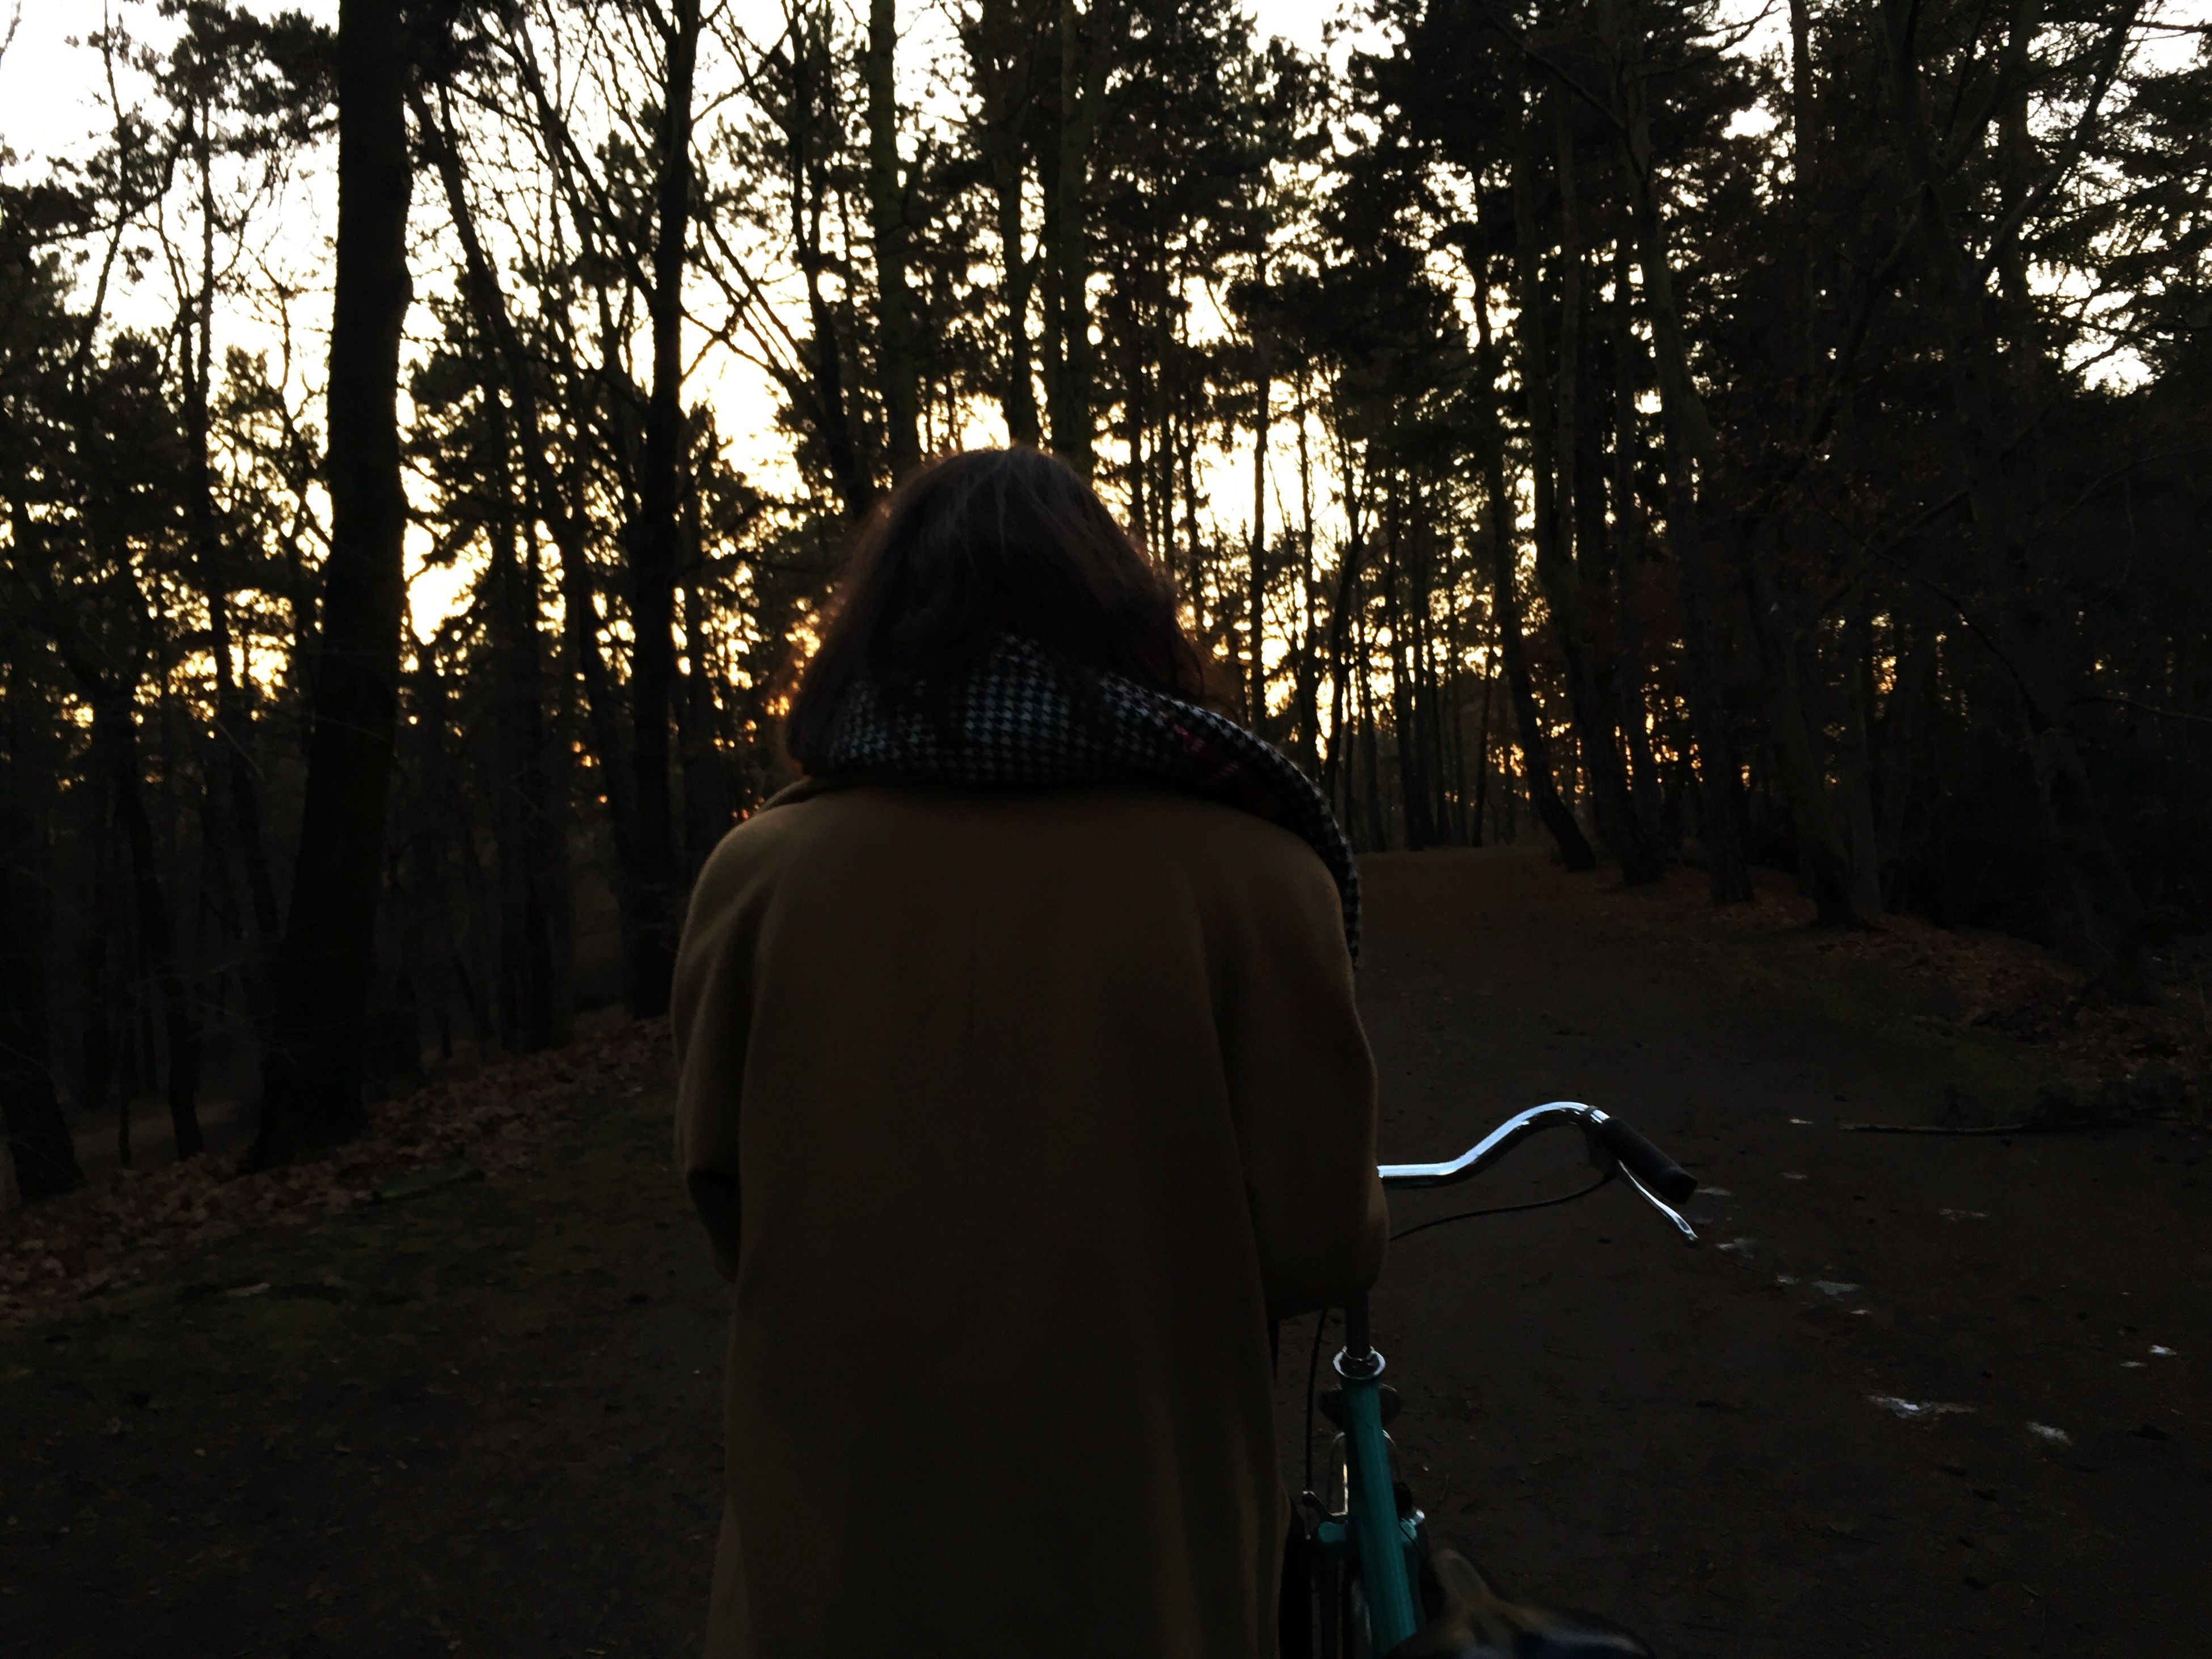 tree, lifestyles, rear view, men, leisure activity, tree trunk, transportation, forest, the way forward, tranquility, road, nature, sunlight, unrecognizable person, outdoors, tranquil scene, person, growth